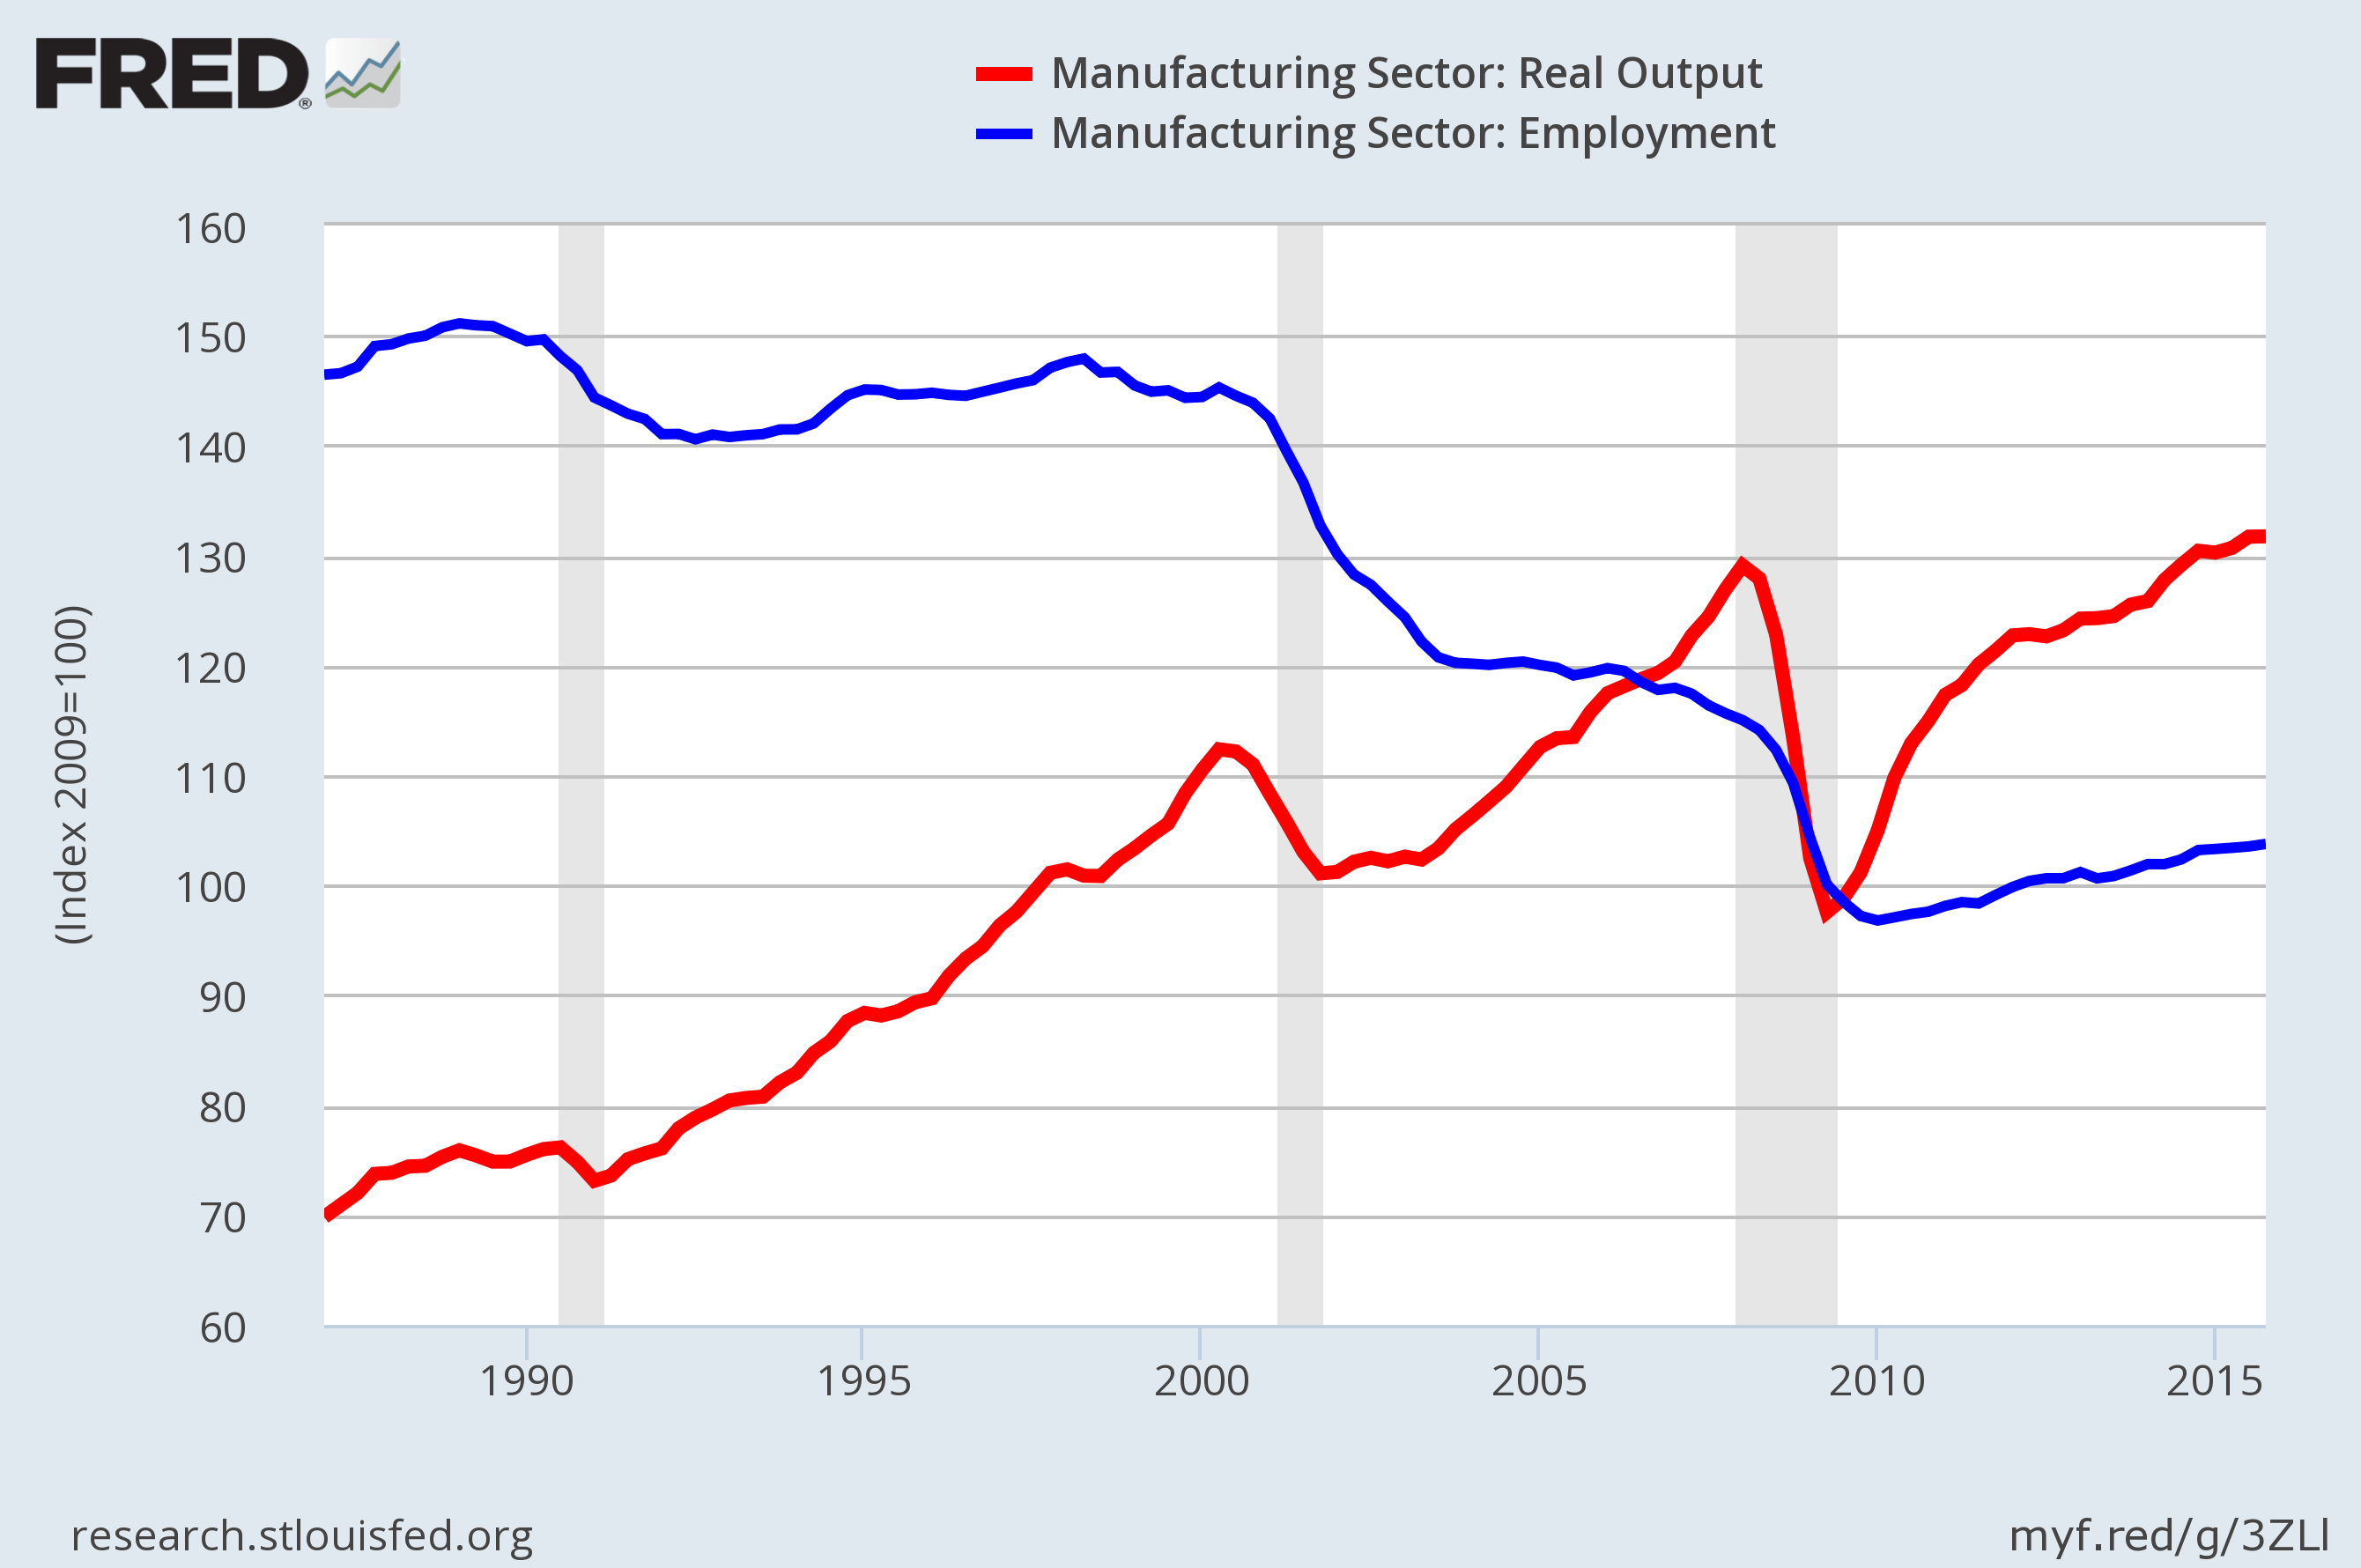 Index of U.S. Manufacturing Output and Employment